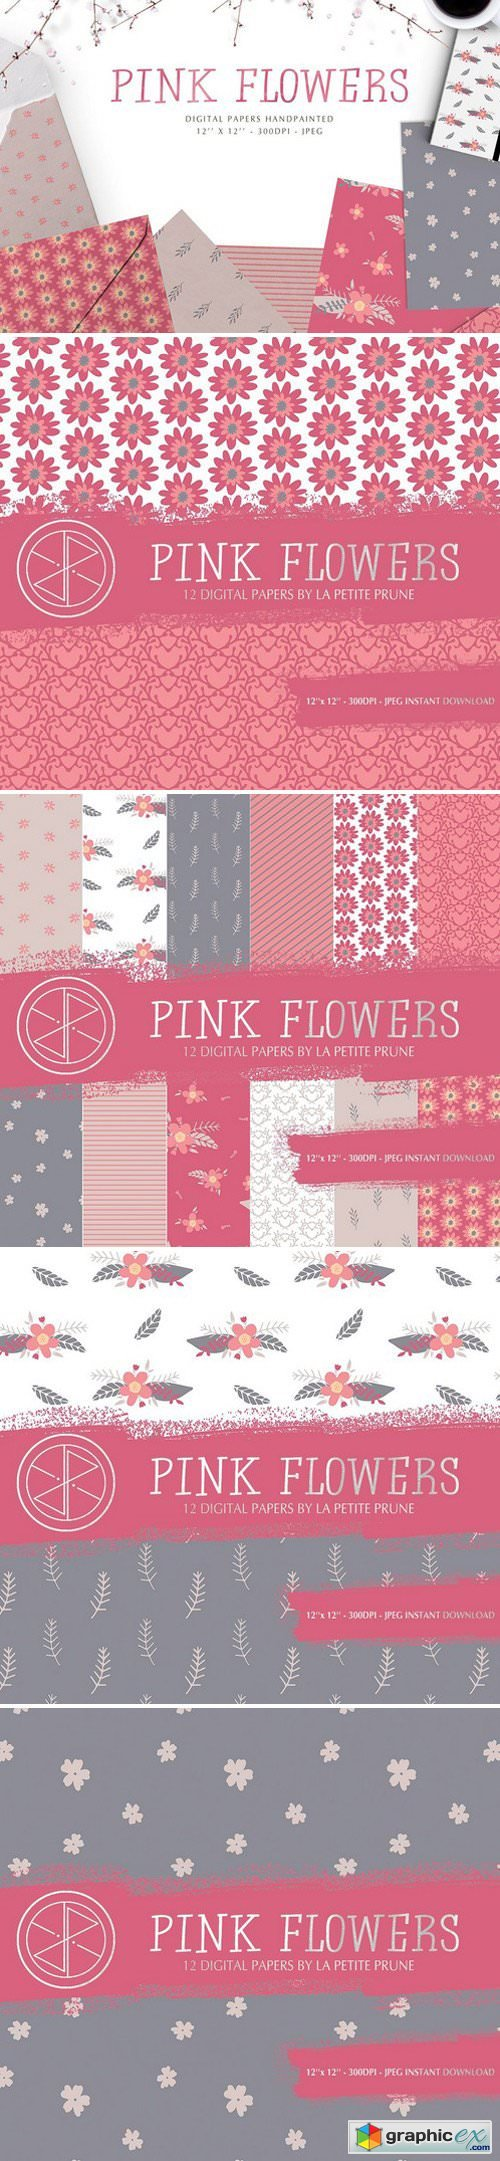 Pink flowers digital papers